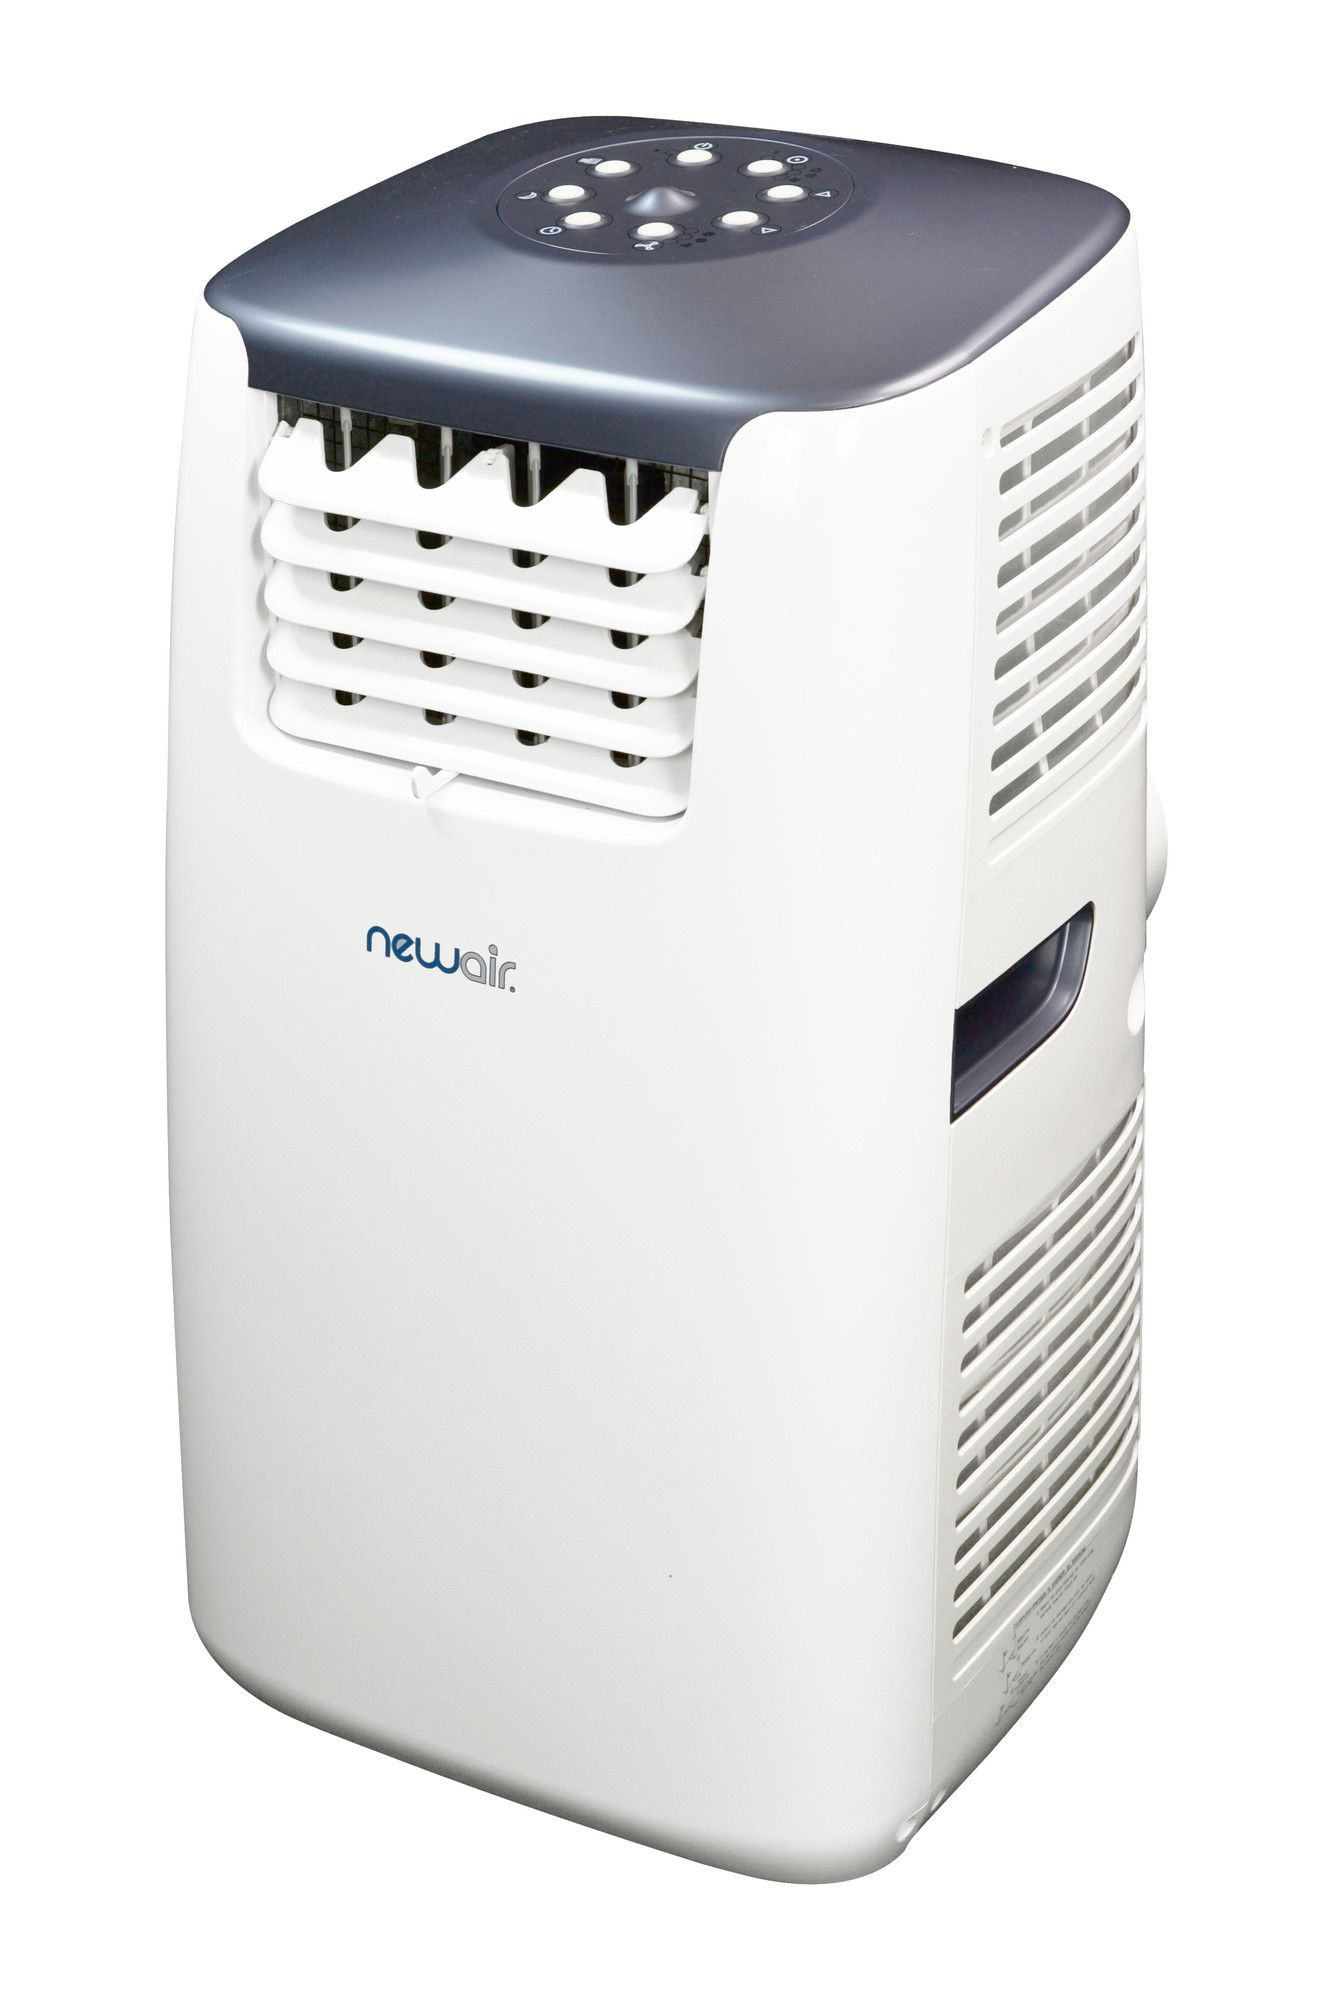 Portable Air Conditioner With Remote Portable Air Conditioner Air Conditioner Portable Air Conditioner Heater